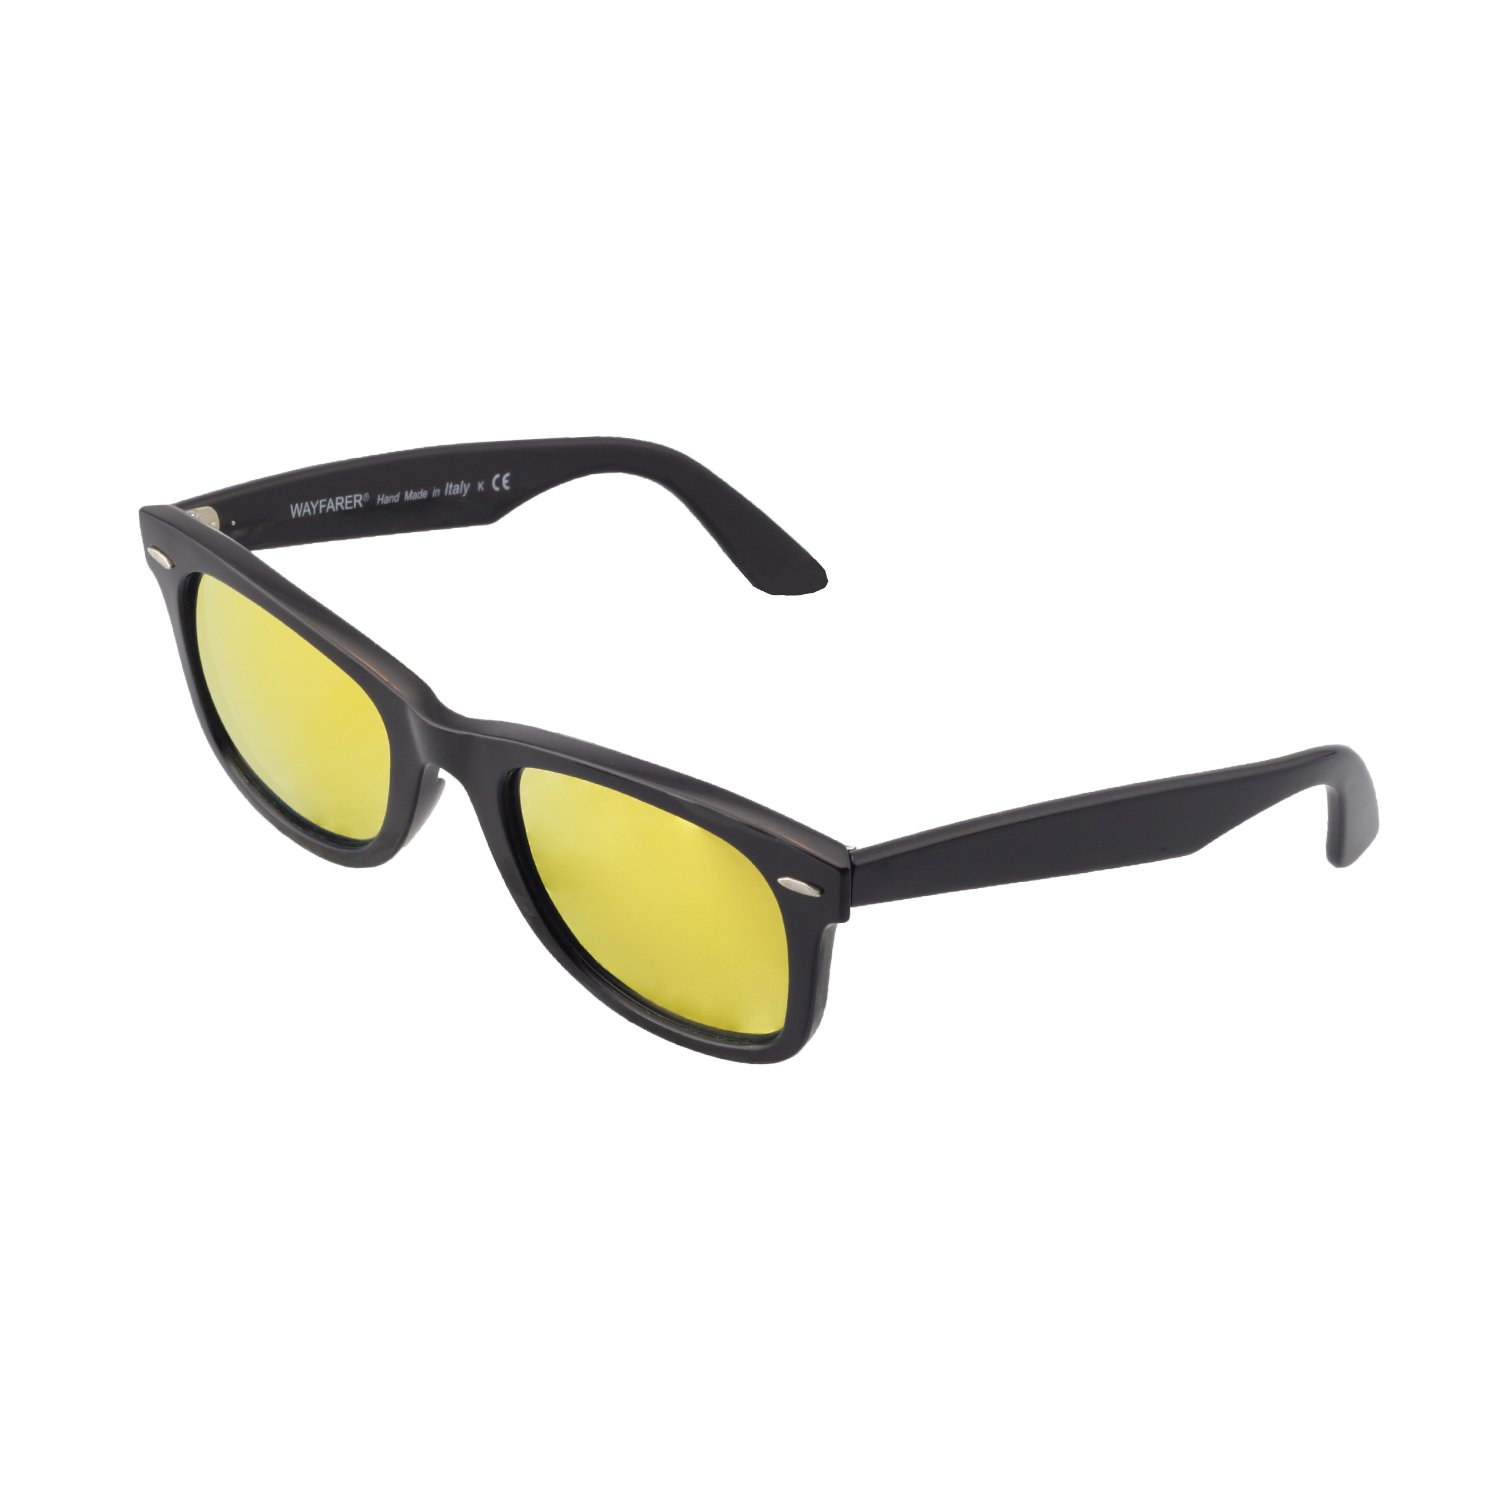 0ec4618af48 Amazon.com  Walleva Replacement Lenses for Ray-Ban Wayfarer RB2140 50mm- 5  Options (24K Gold - Polarized)  Clothing